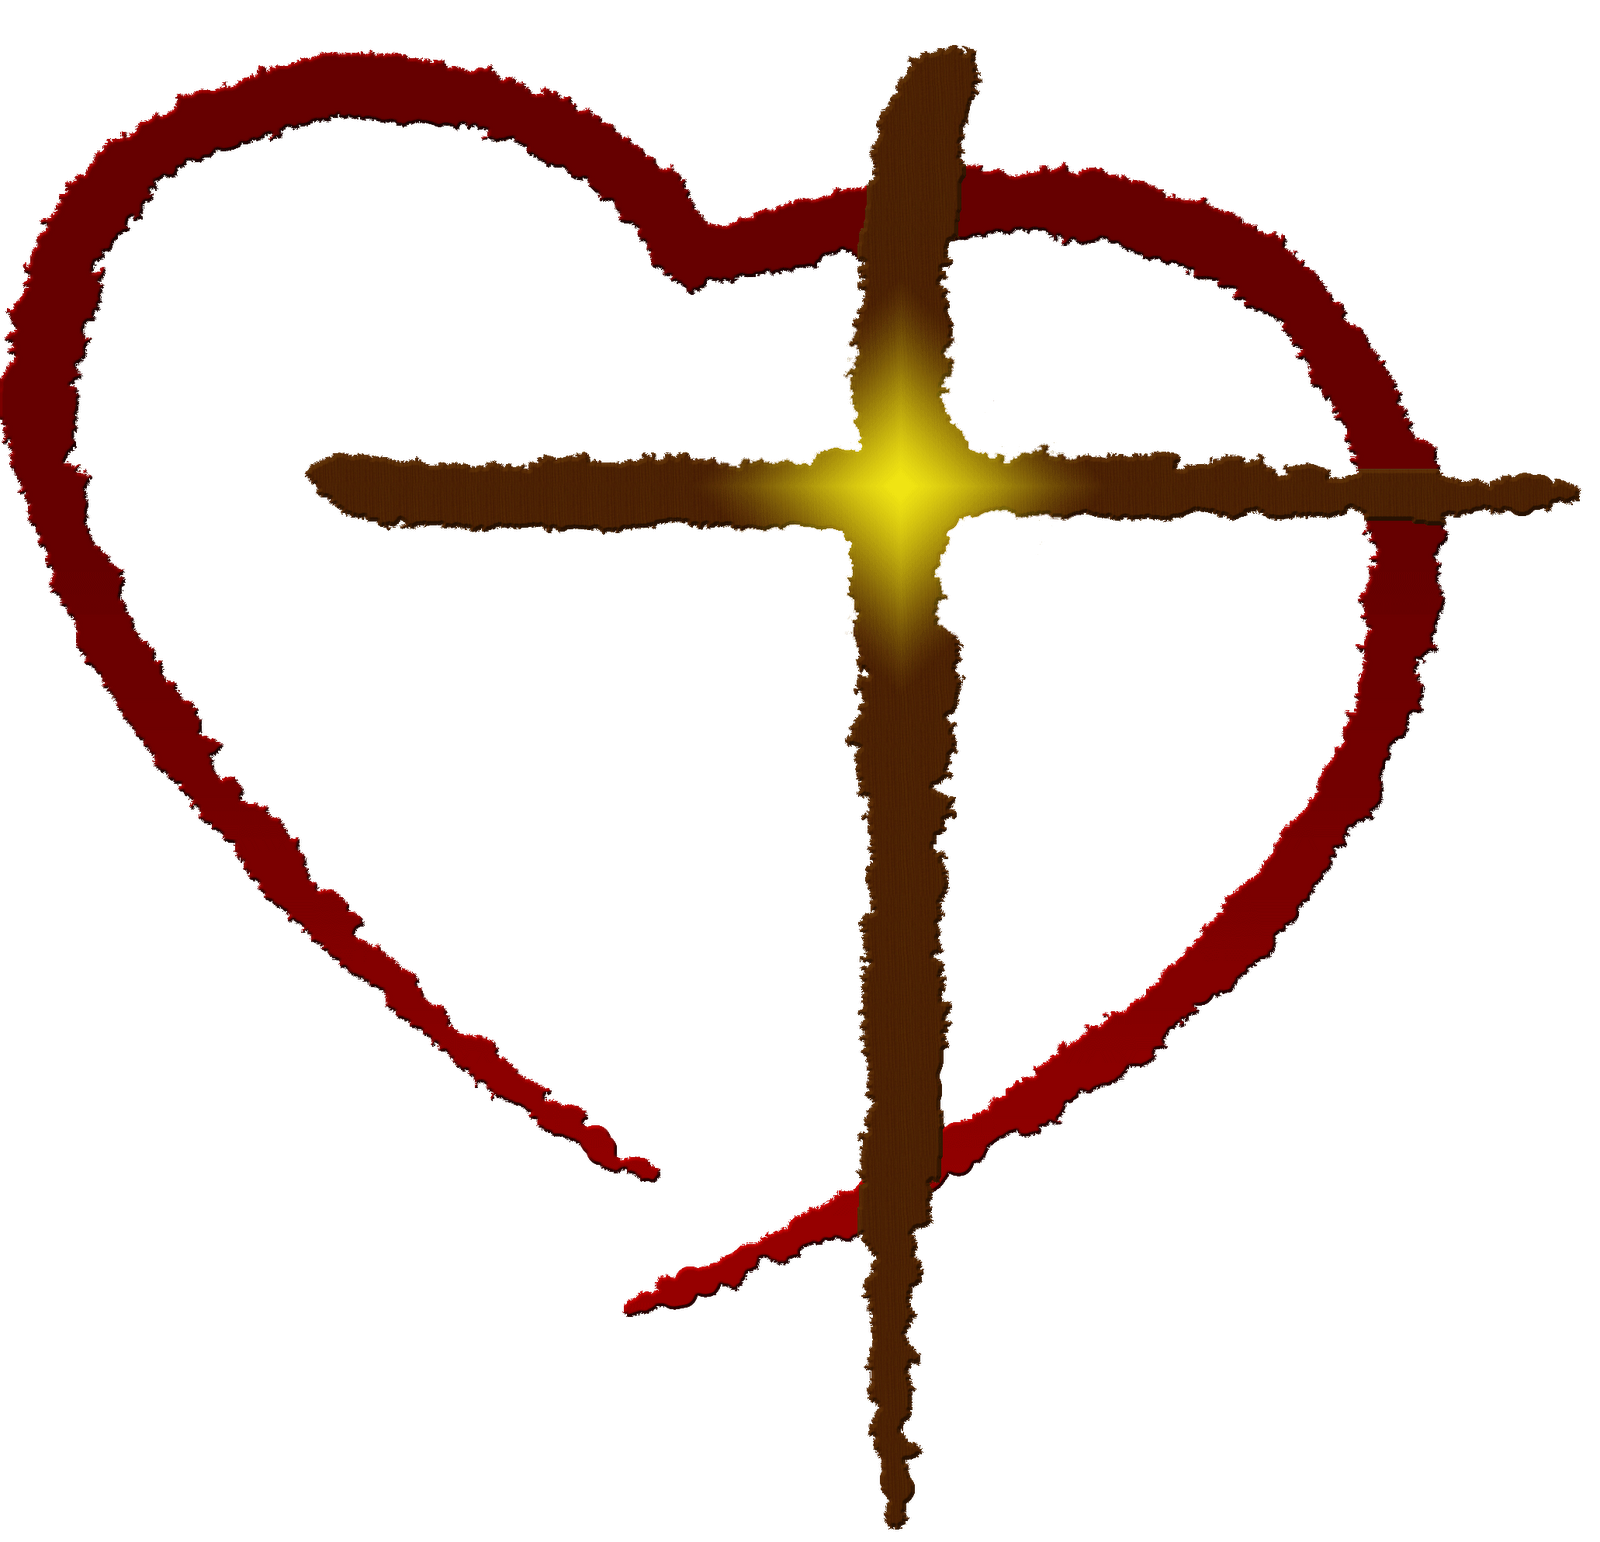 Free Religious Love Cliparts, Download Free Clip Art, Free.